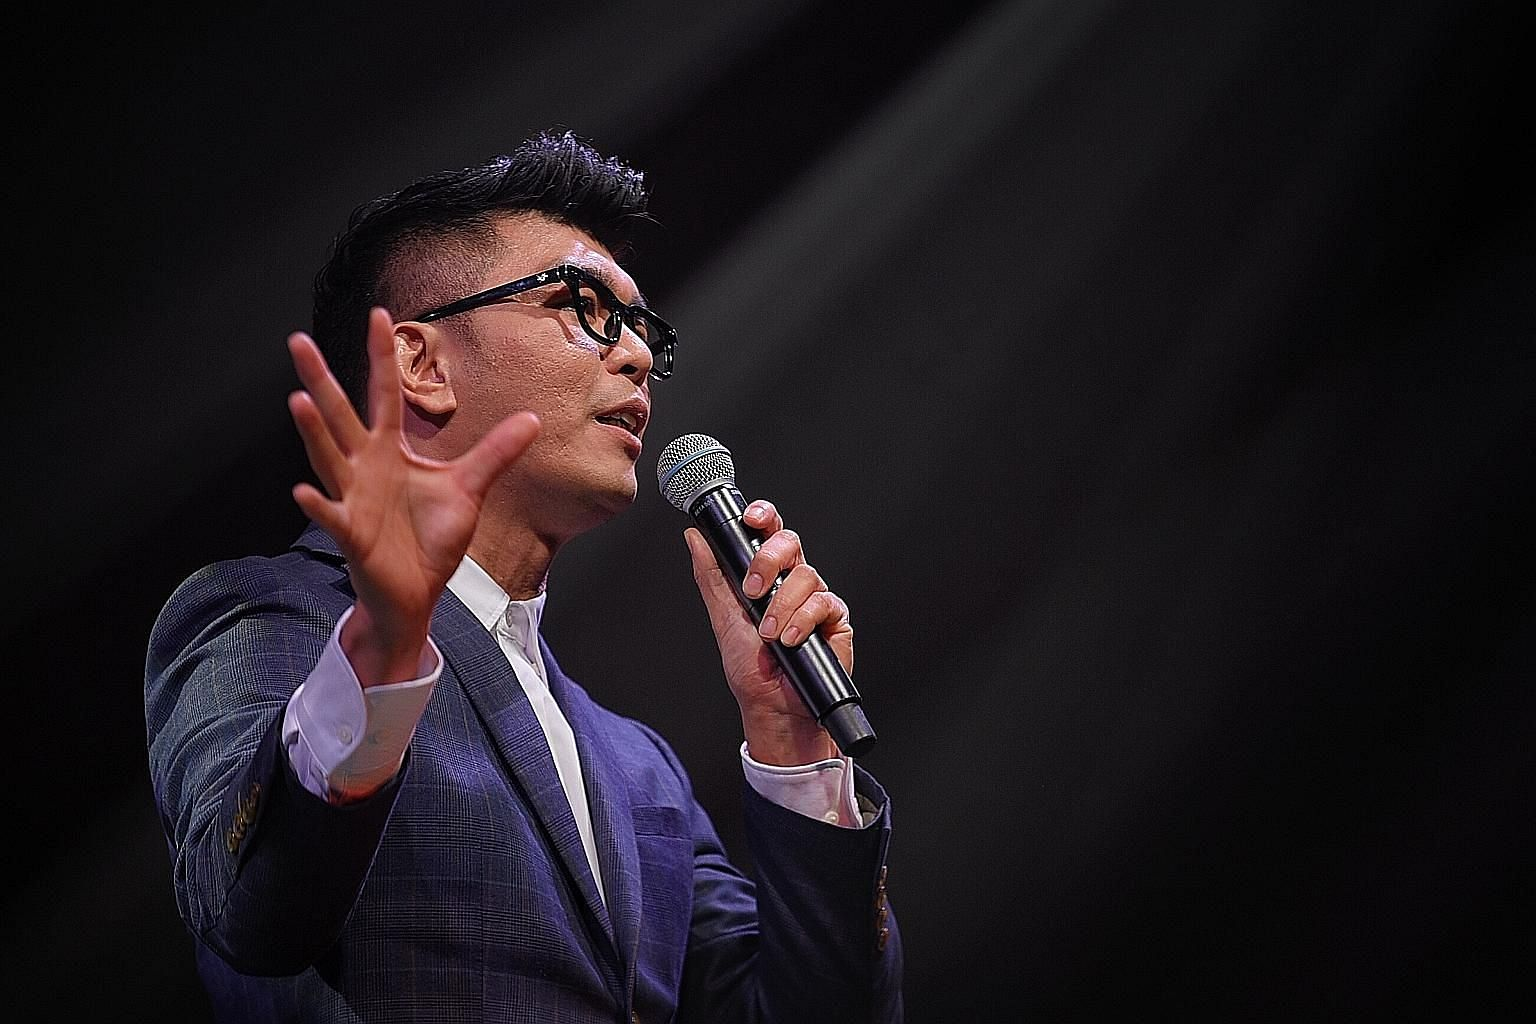 Director Royston Tan and his team had to completely revamp the evening show as the Covid-19 crisis took hold. ST PHOTO: MARK CHEONG